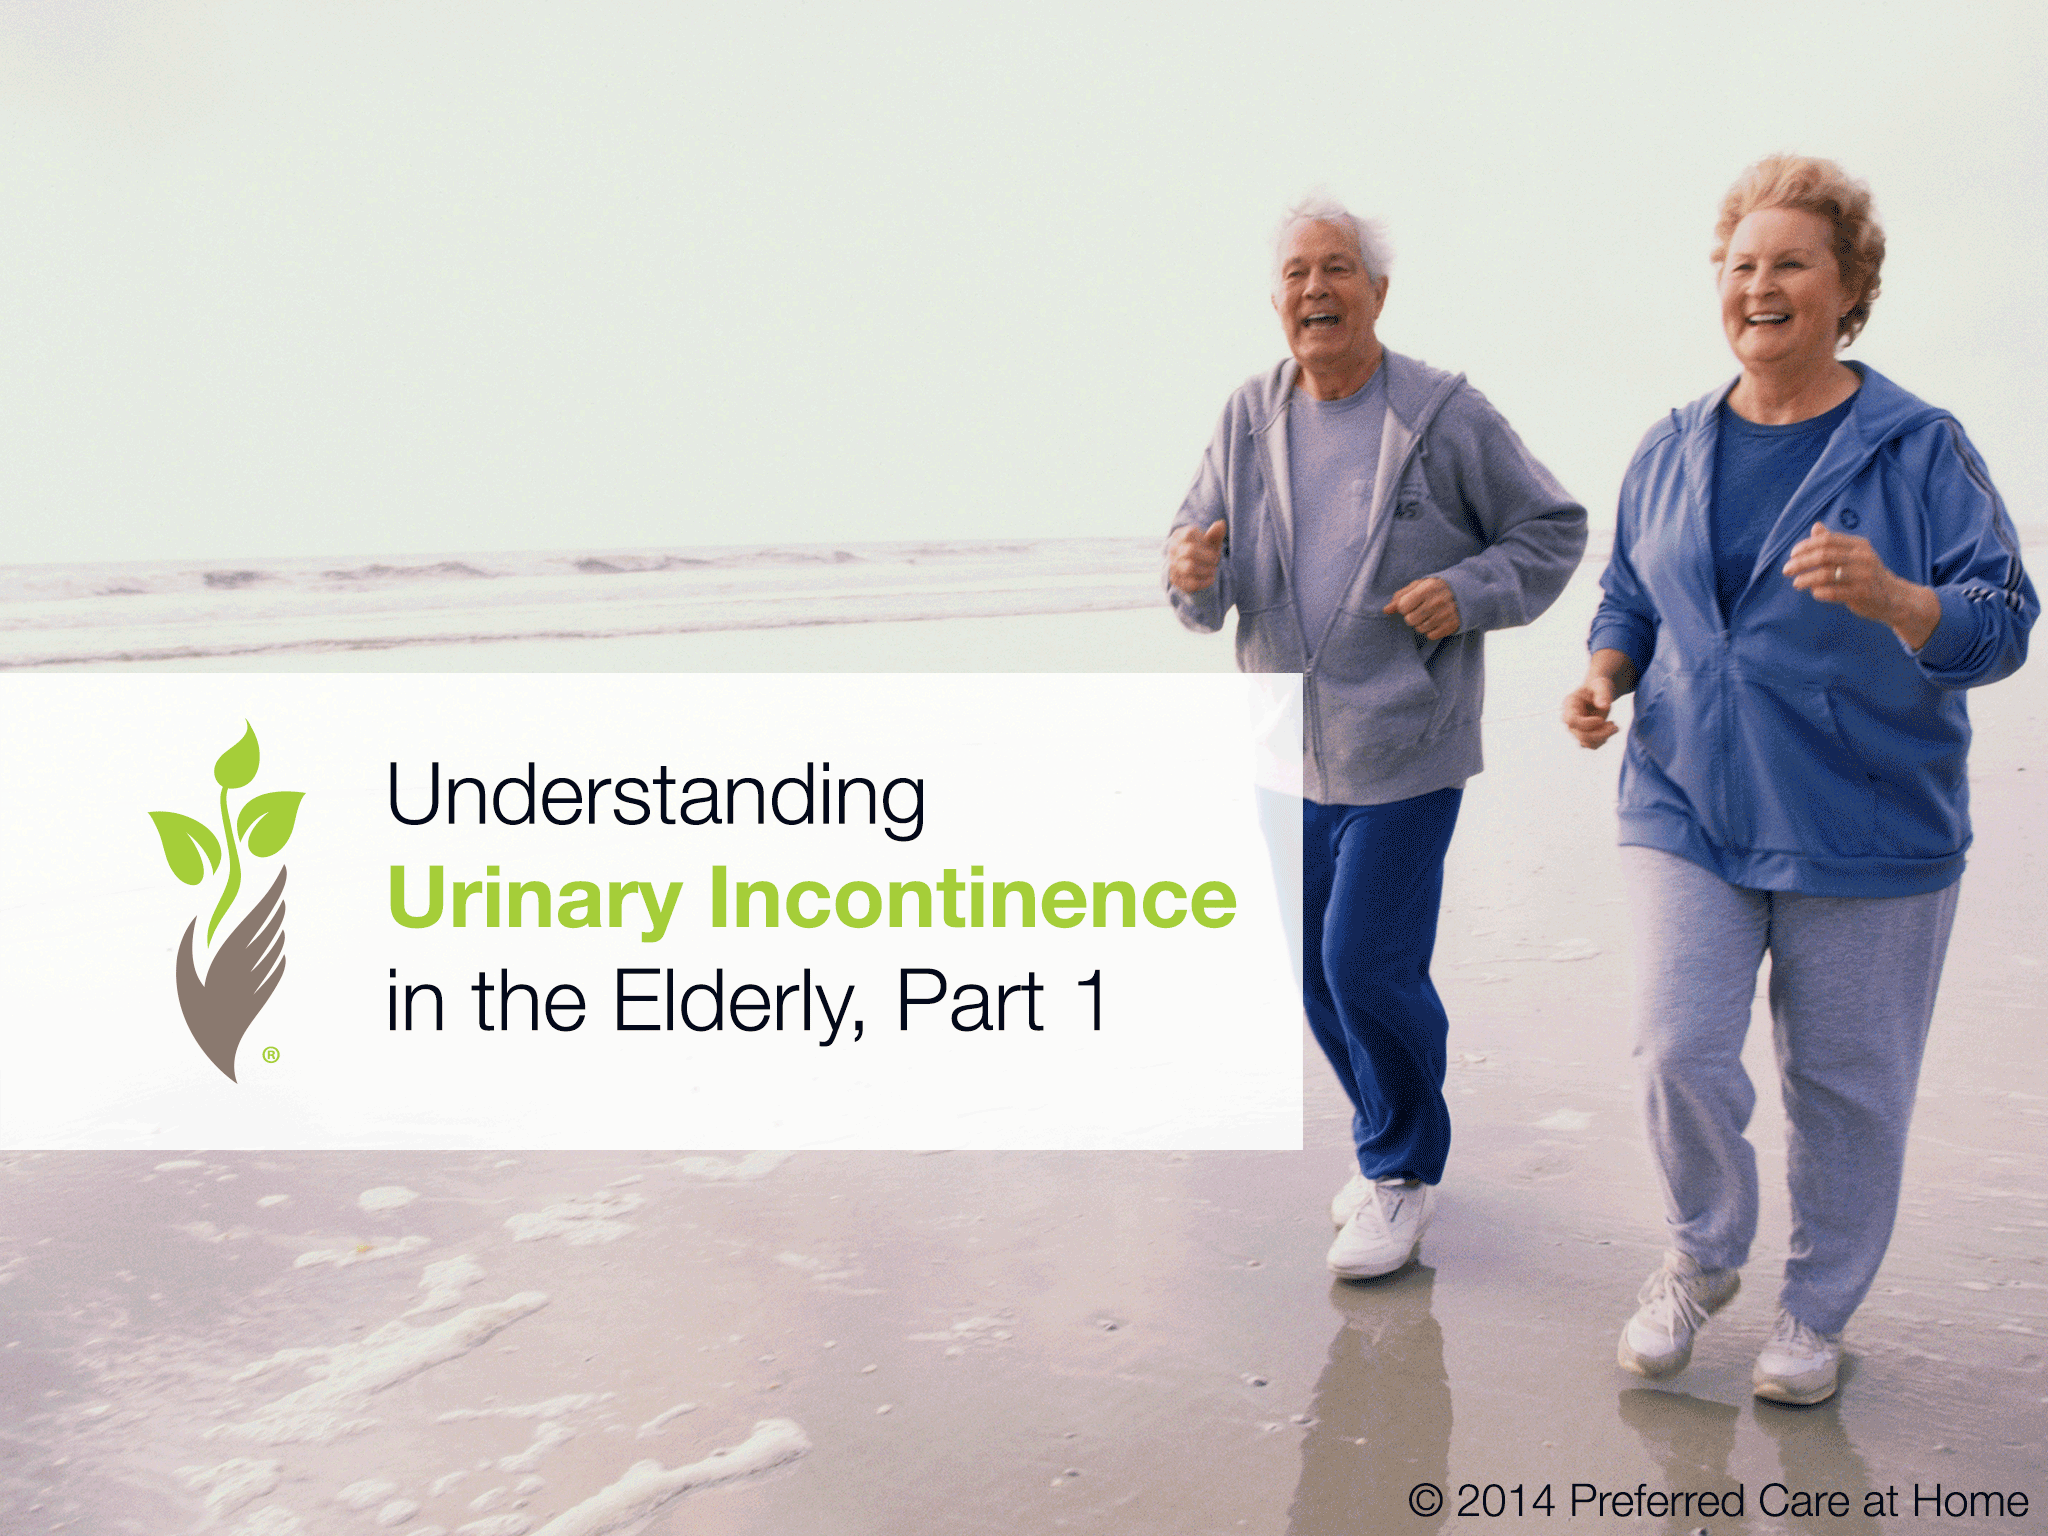 Understanding Urinary Incontinence in the Elderly, Part 1